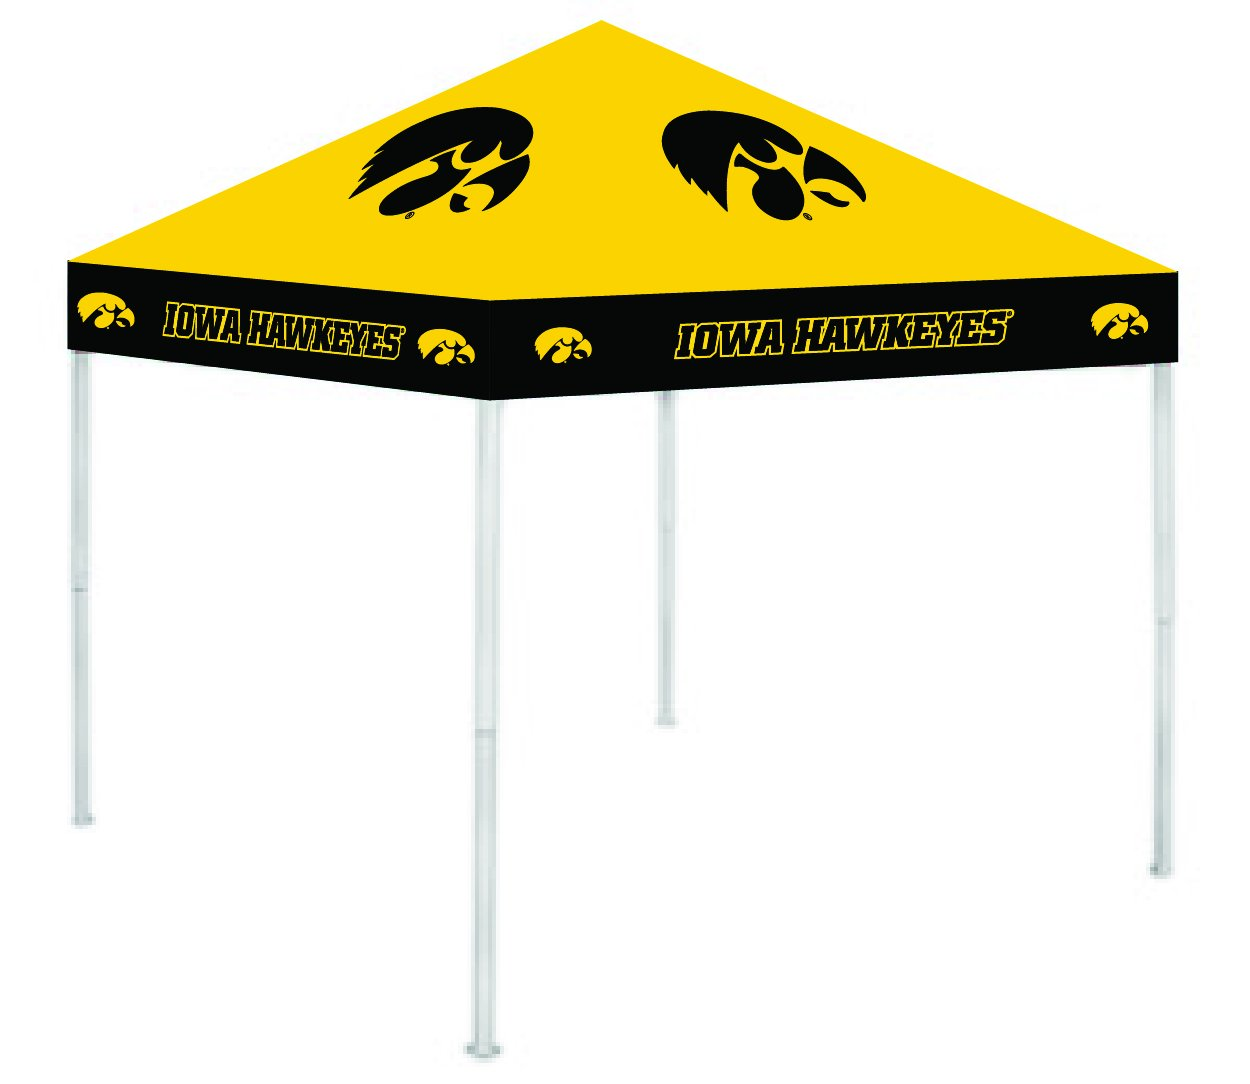 Rivalry RV229-5000 Iowa 9' x 9' Ultimate Tailgate Pop-Up Gazebo Canopy Tent B003HLOSS4 9 x 9|アイオワホークアイズ アイオワホークアイズ 9 x 9